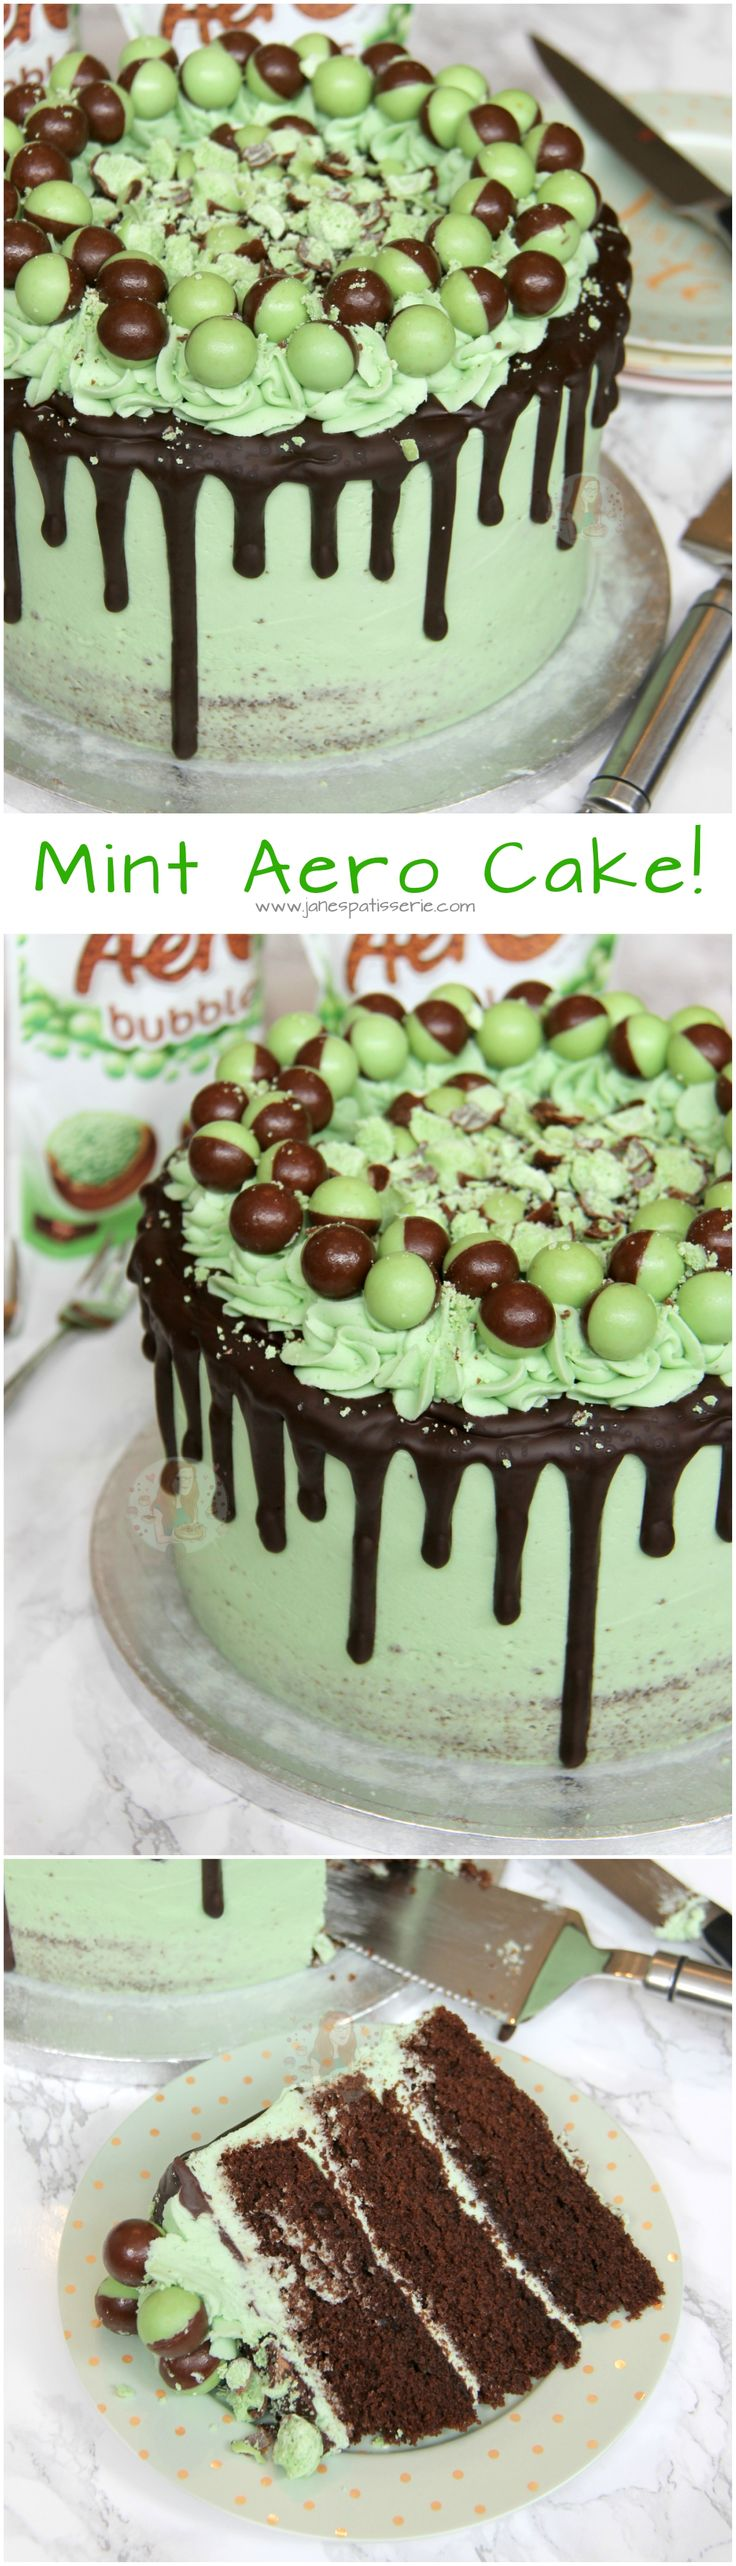 Mint Aero Cake! ❤️ A Three Layer Chocolate Mint Sponge, with Mint Buttercream Frosting, Dark Chocolate Drip, and Mint Aero Bubbles Galore!